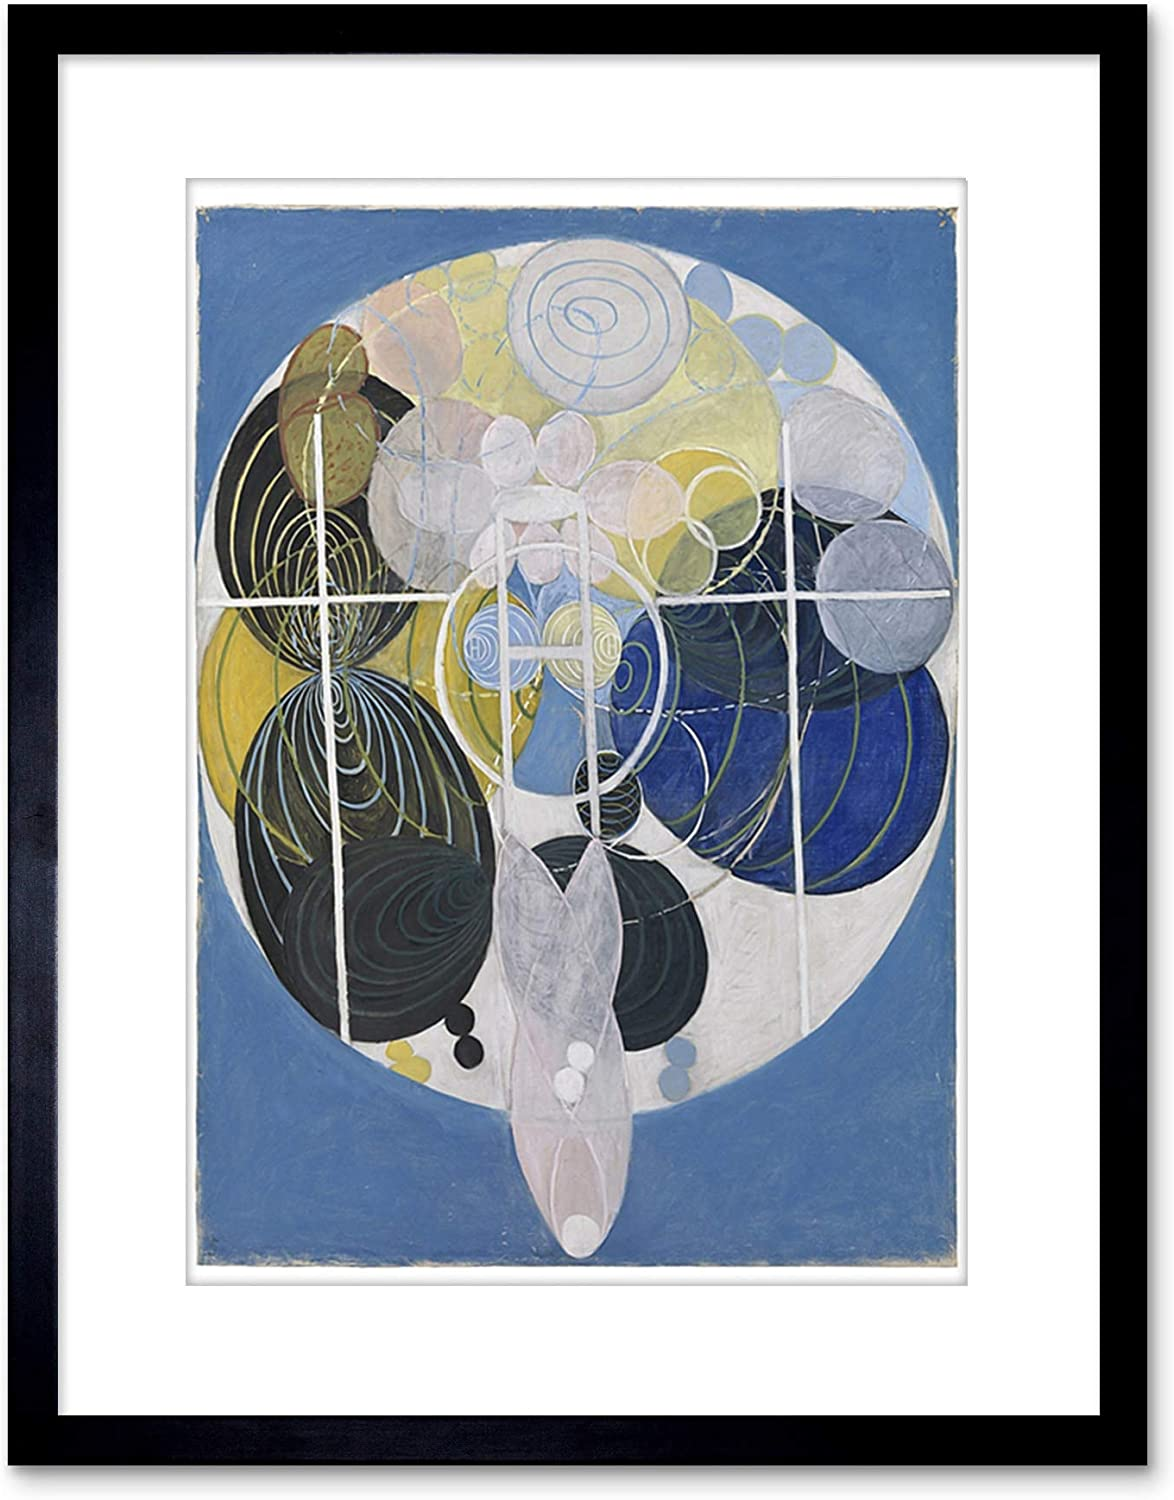 Wee Blue Coo Painting Abstract Hilma AF KLINT 1907 Large Figure Framed Art F97X11993